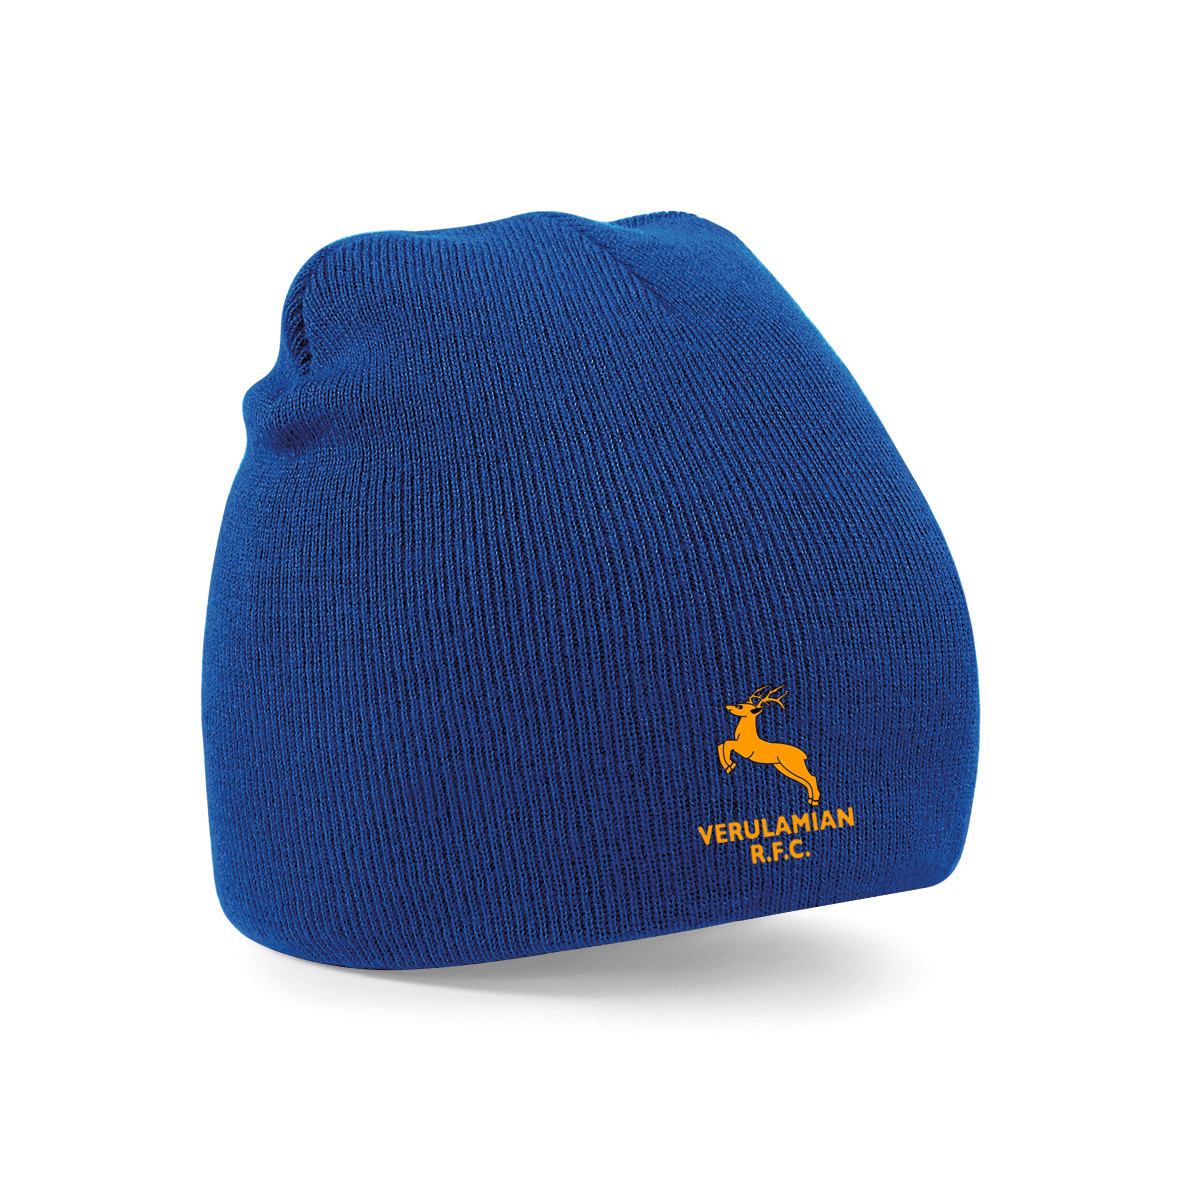 Premium Force VRFC Pull on Beanie Royal